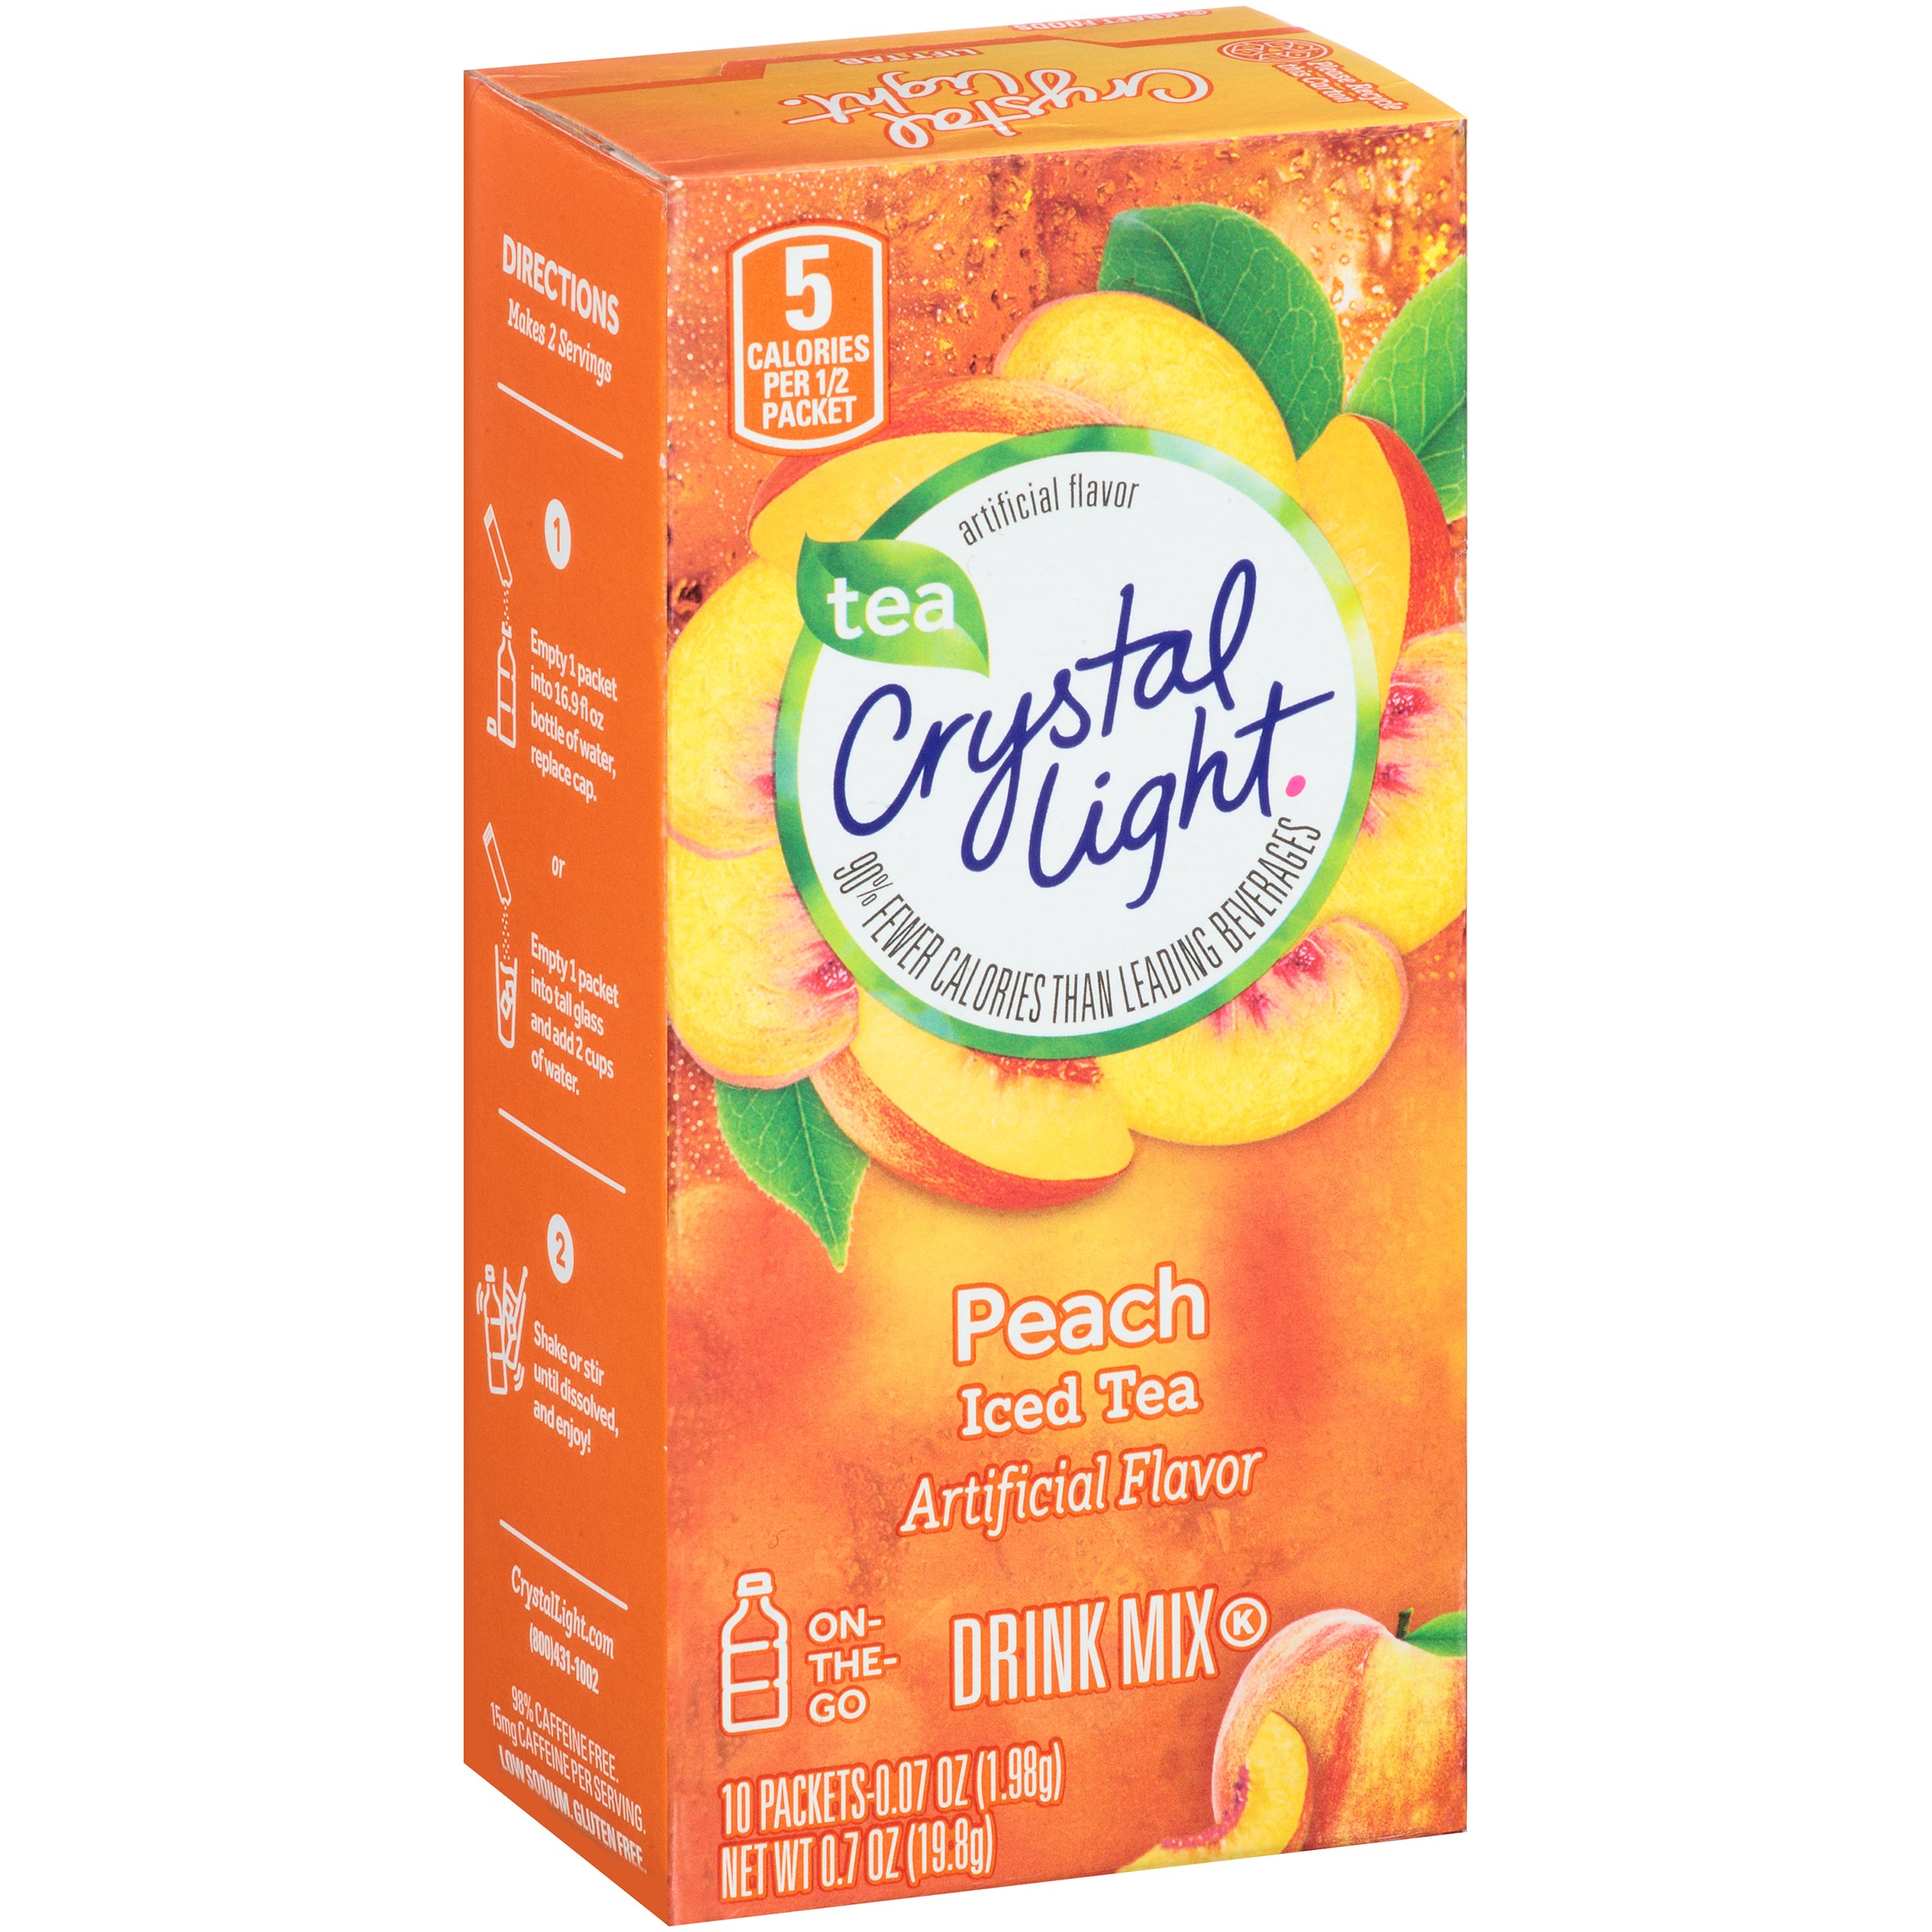 Crystal Light On The Go Peach Tea, 0.07 Ounce Packet